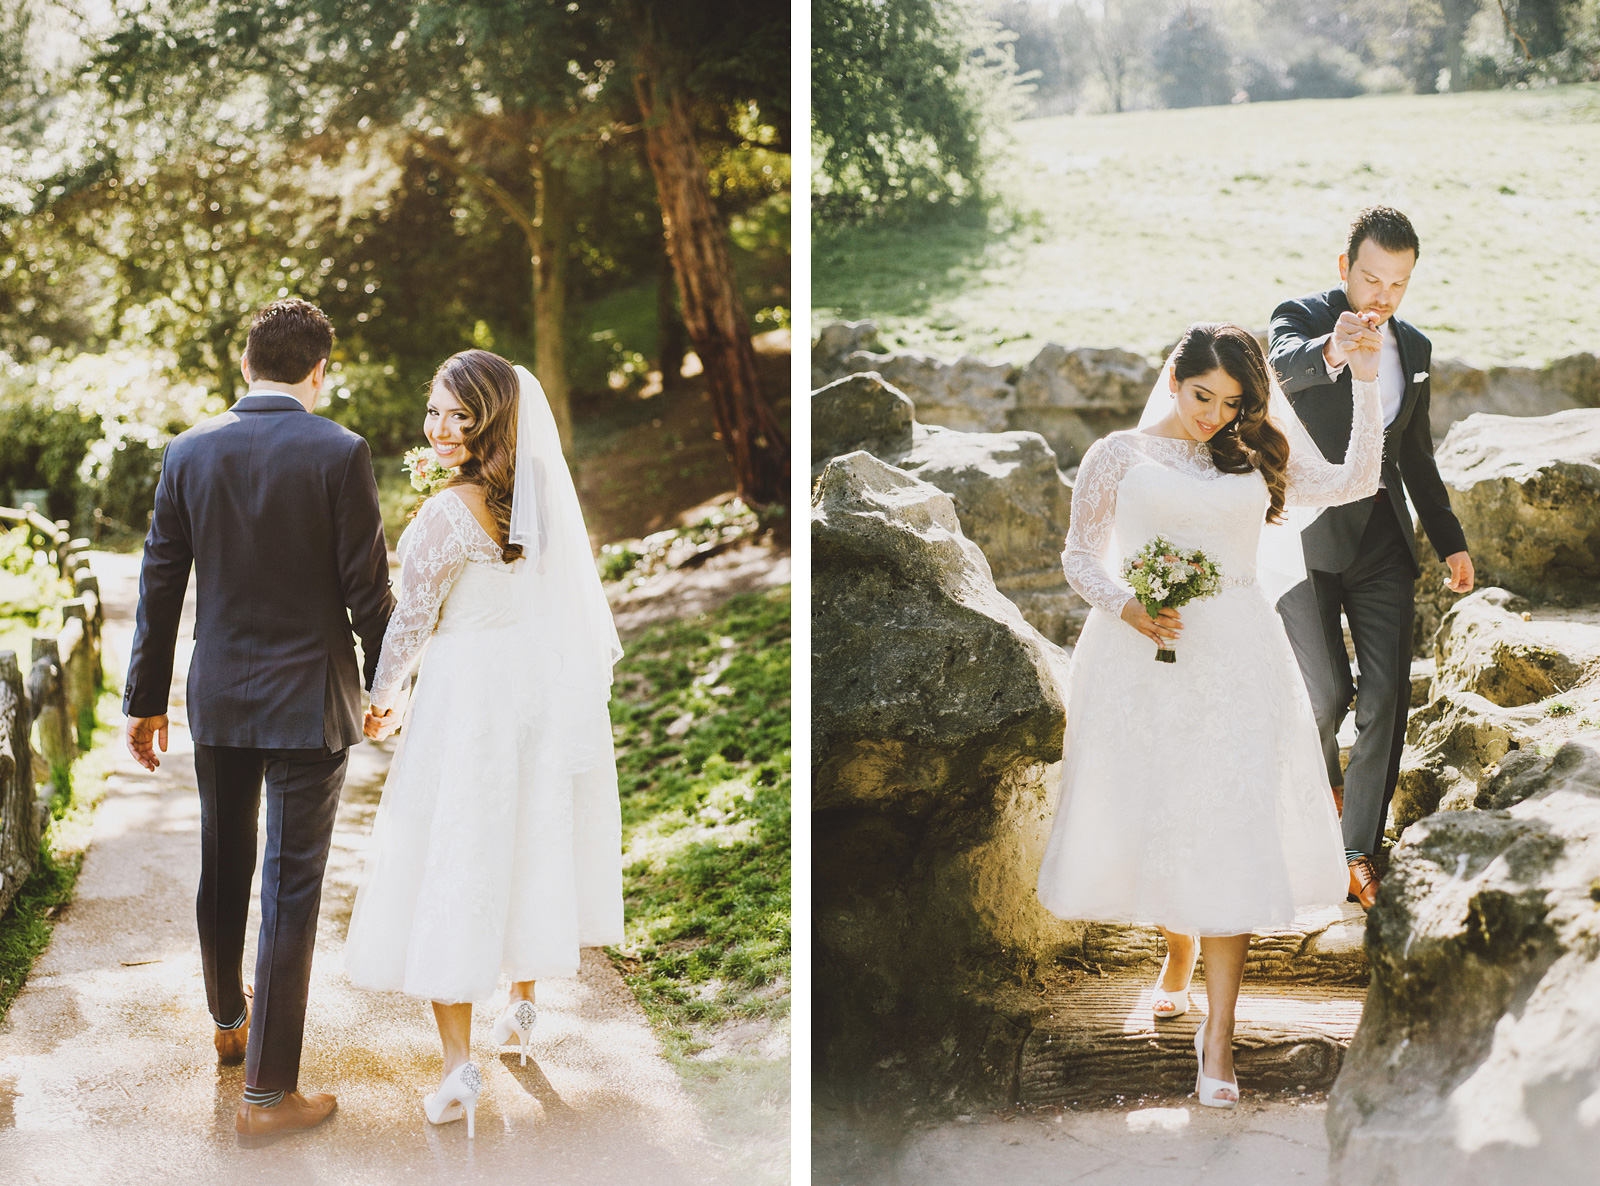 Bride and Groom walking to ceremony site | Springtime Paris Elopement at Parc des Buttes Chaumont